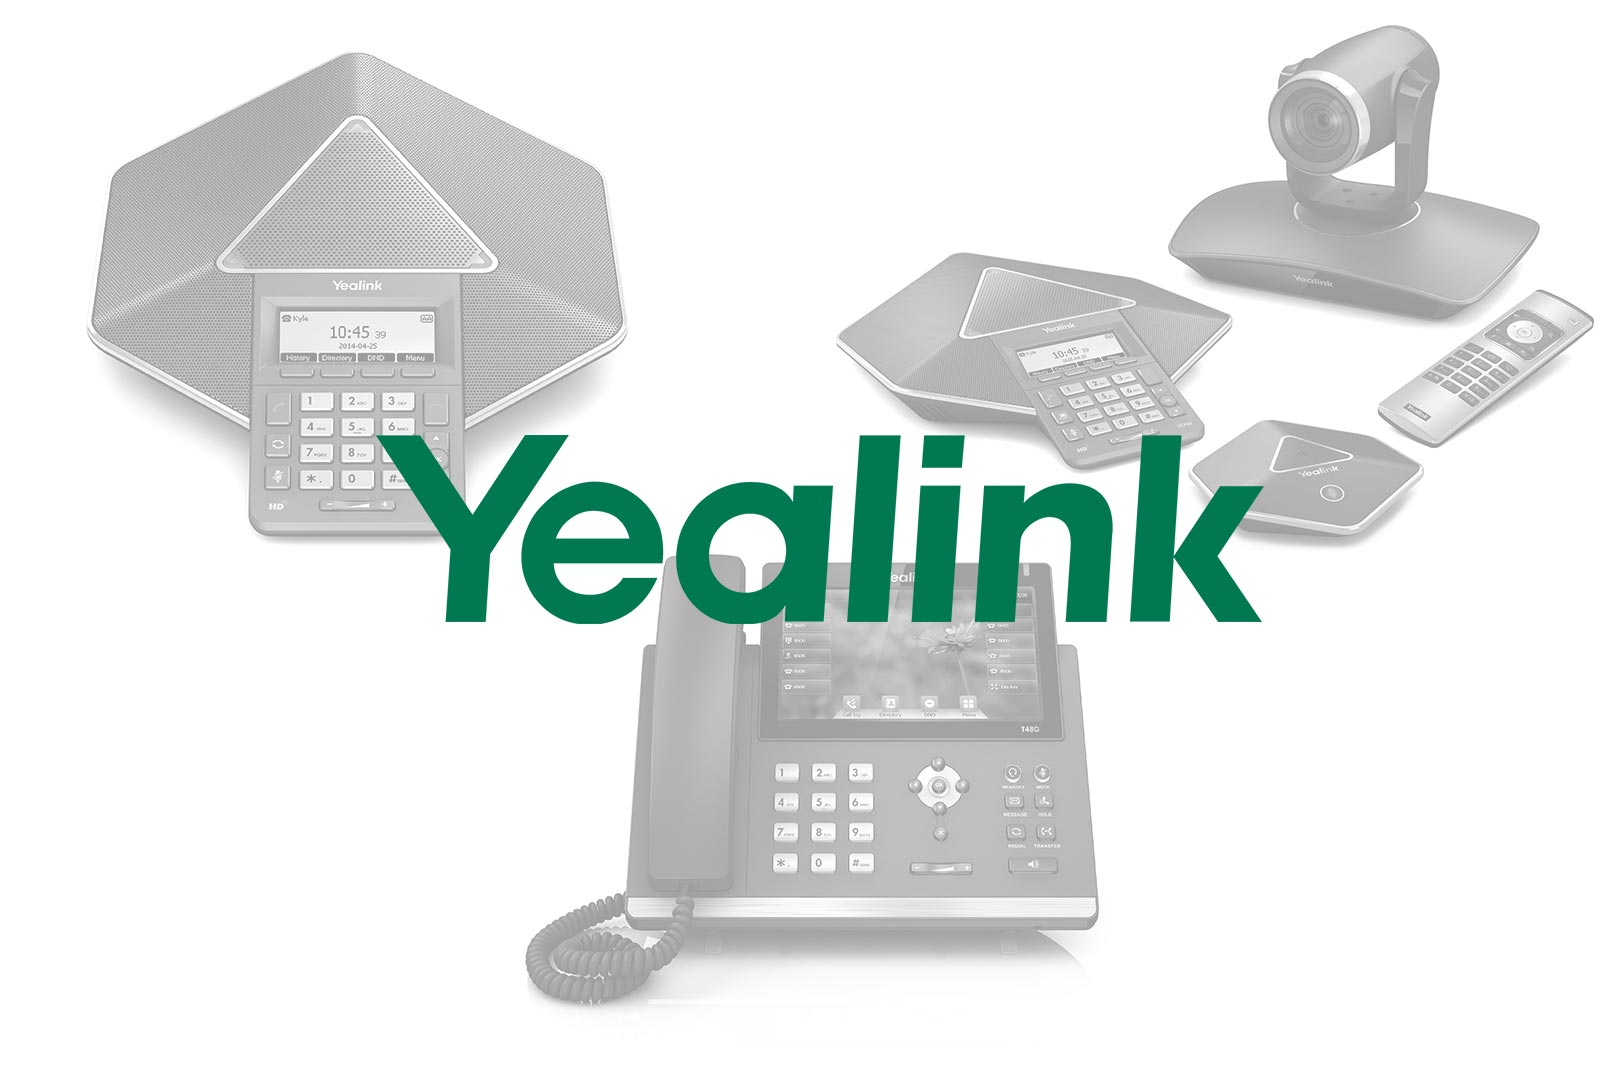 addcom-are-now-working-directly-with-yealink-in-australia